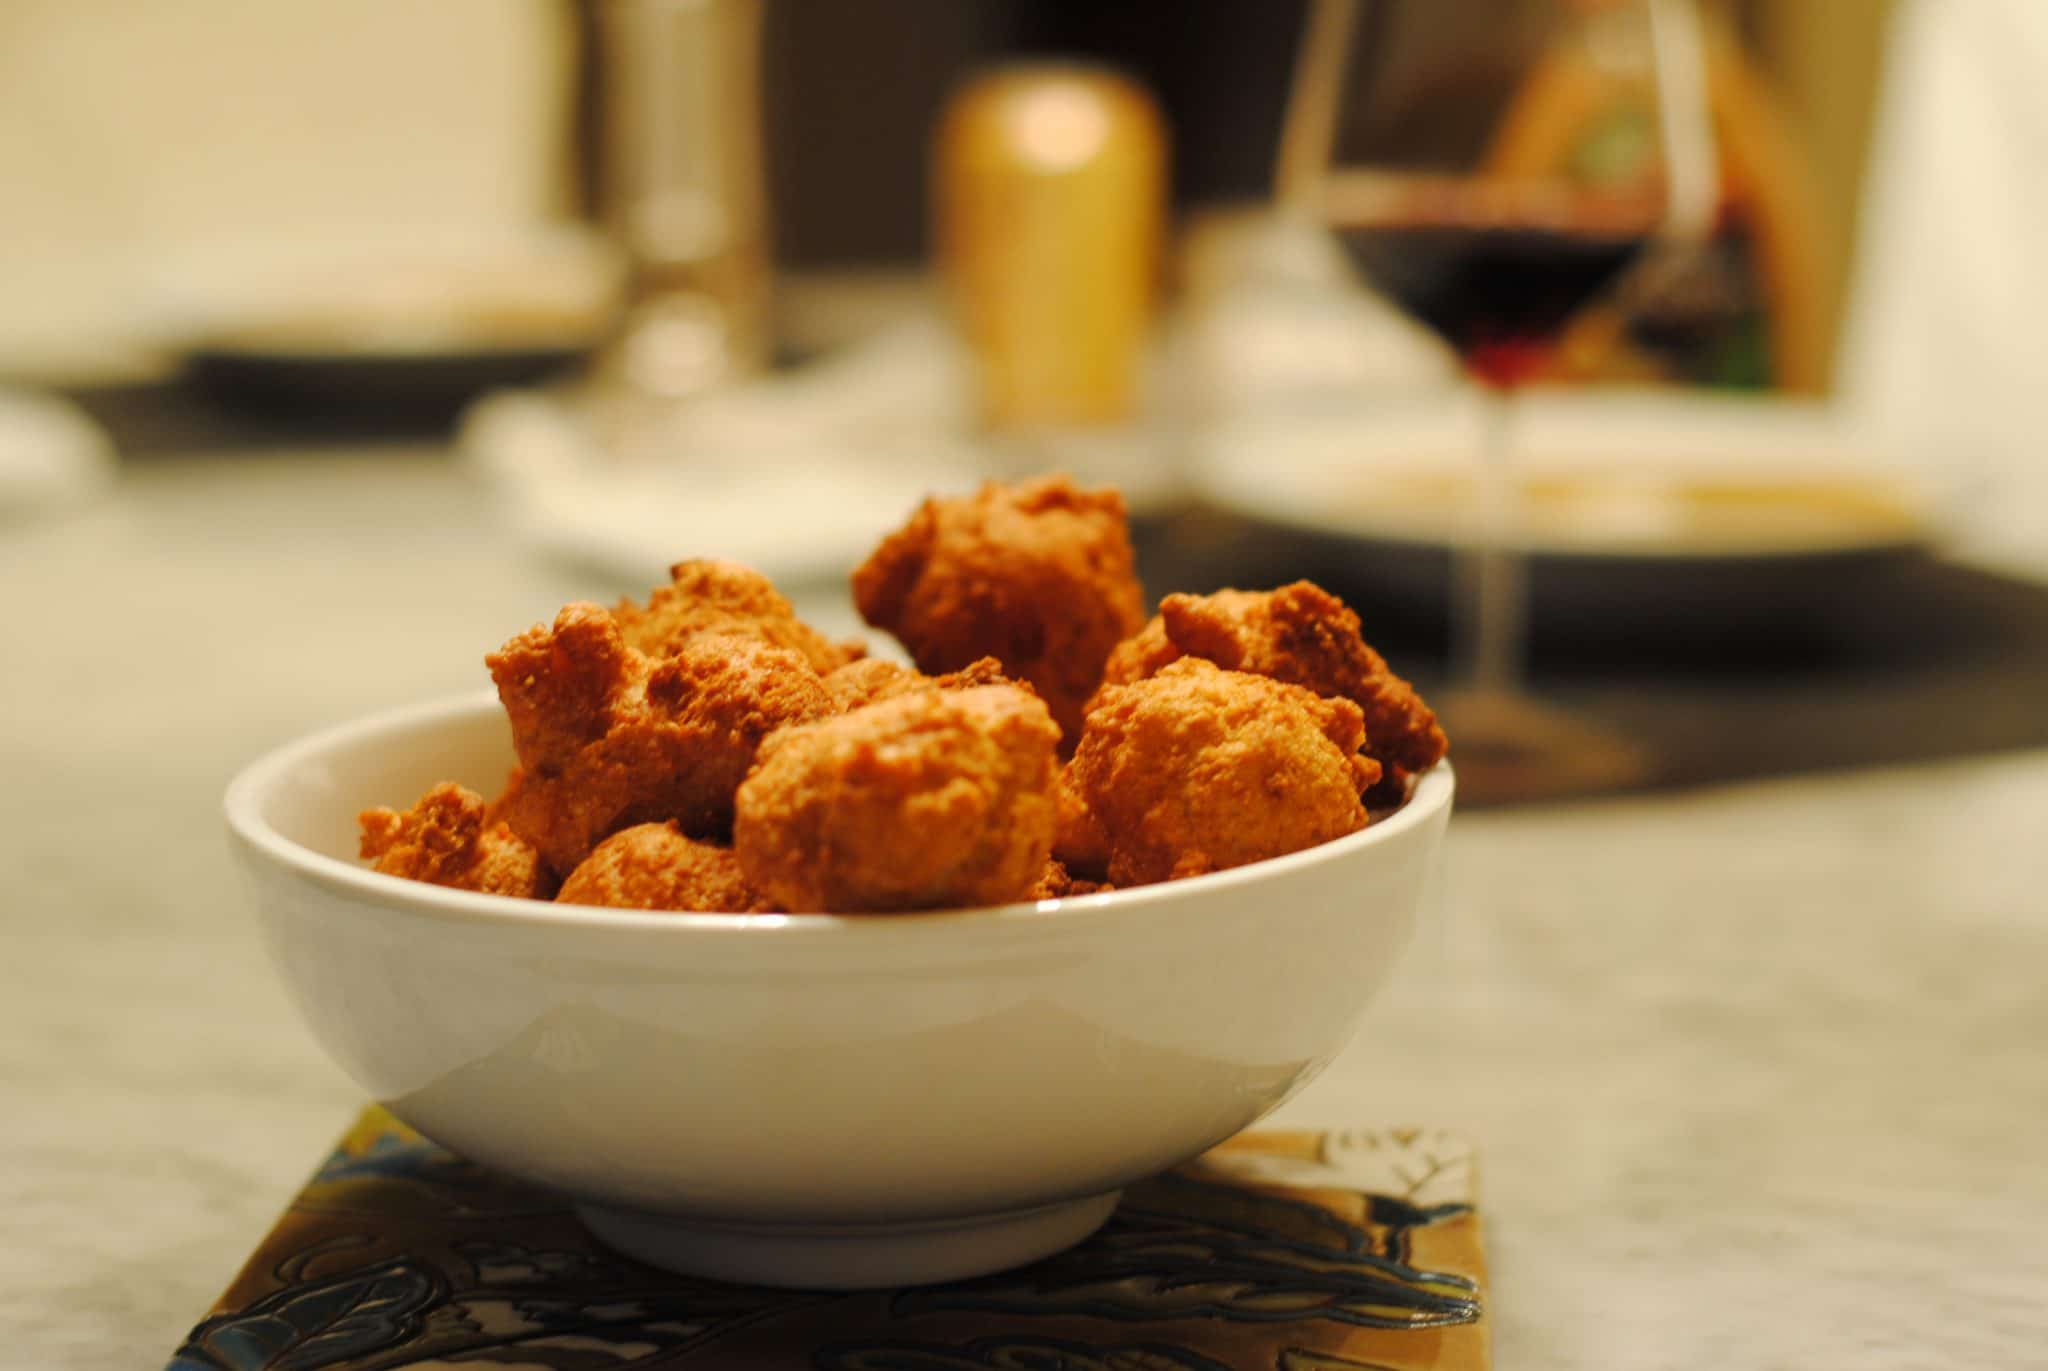 Learn How To Make Hush Puppies With Jiffy Mix On The Gas The Art